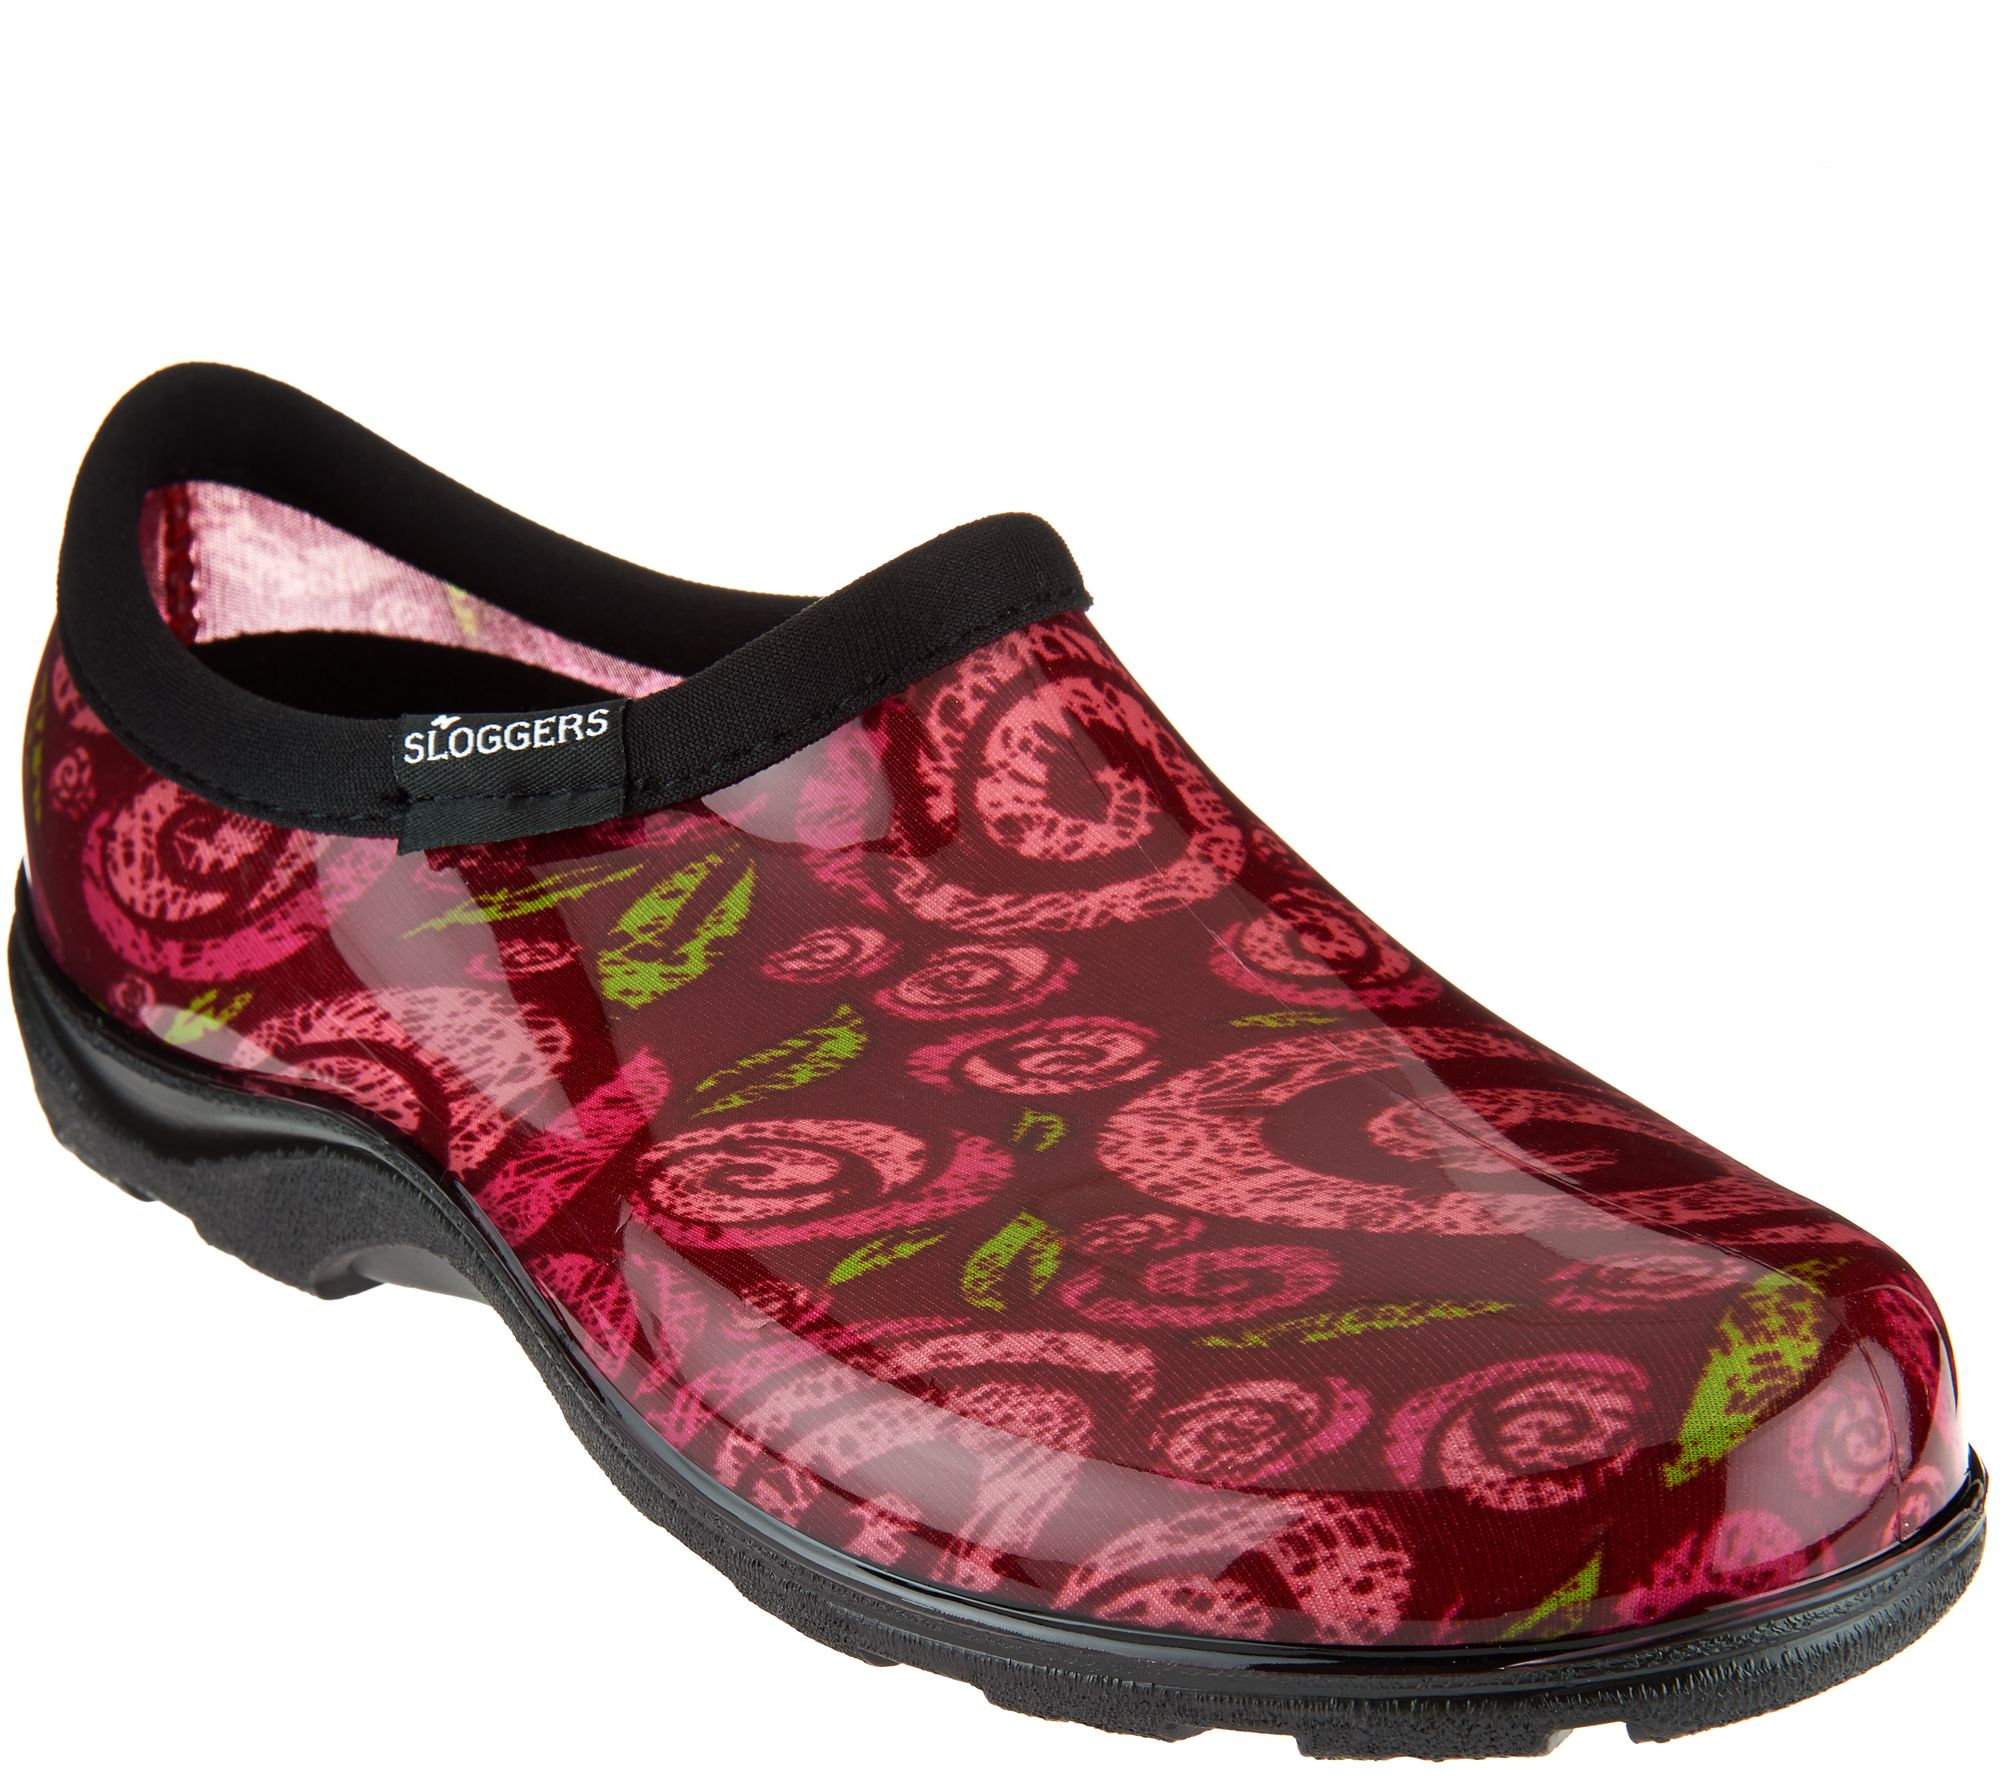 really cheap online Sloggers Waterproof Swirl Design Garden Shoe w/ Comfort Insole clearance shop for clearance best with mastercard online sale cheap online 7pers